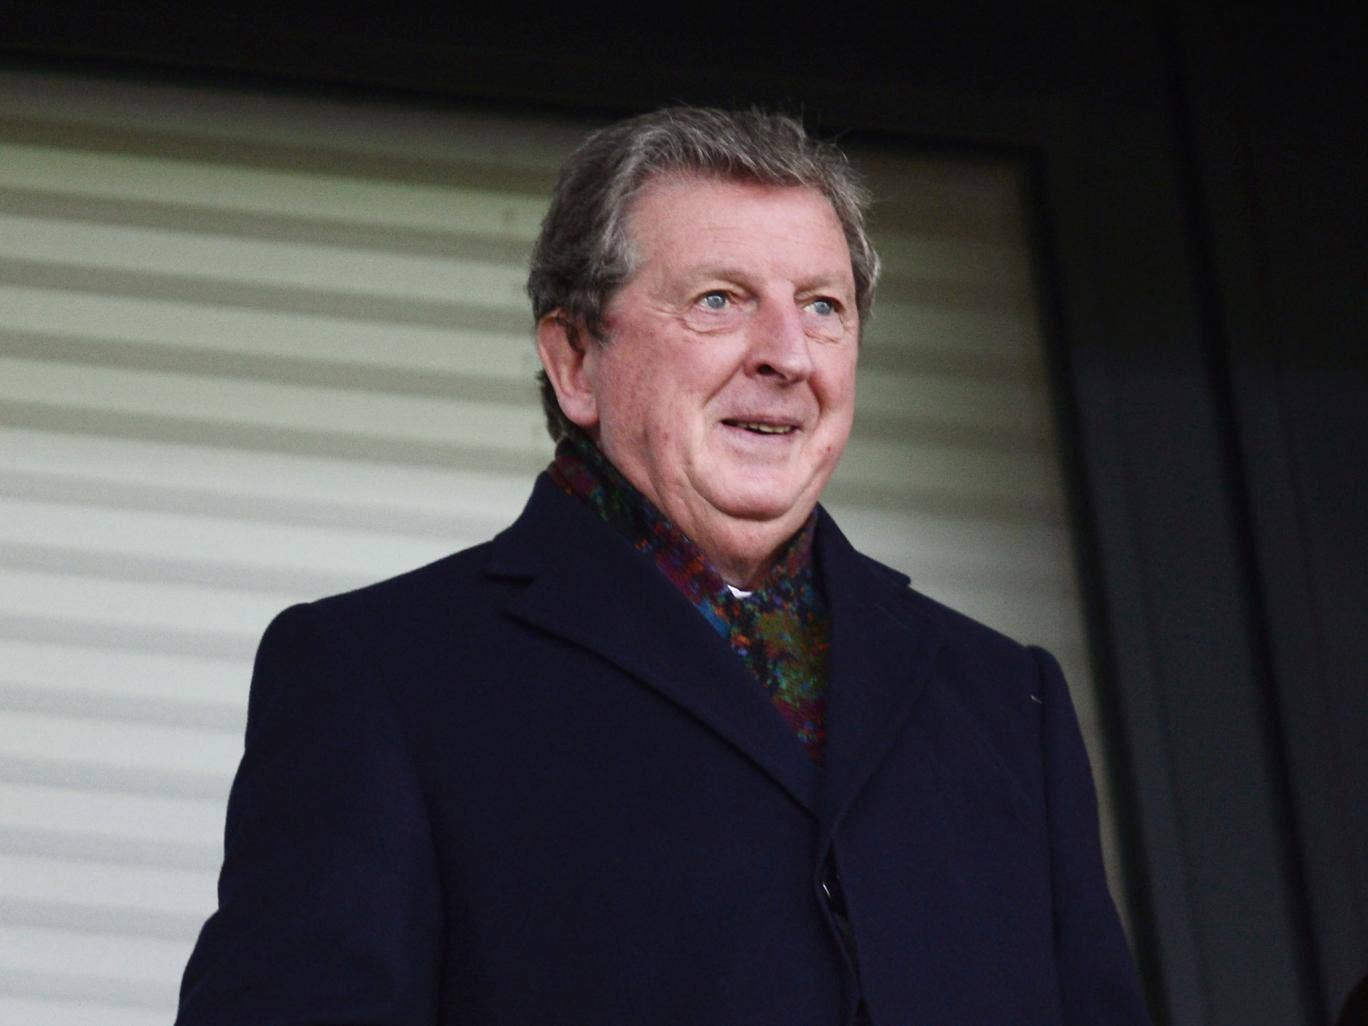 Roy Hodgson is said to have a 'nasty side to him too' according to his assistant manager Ray Lewington